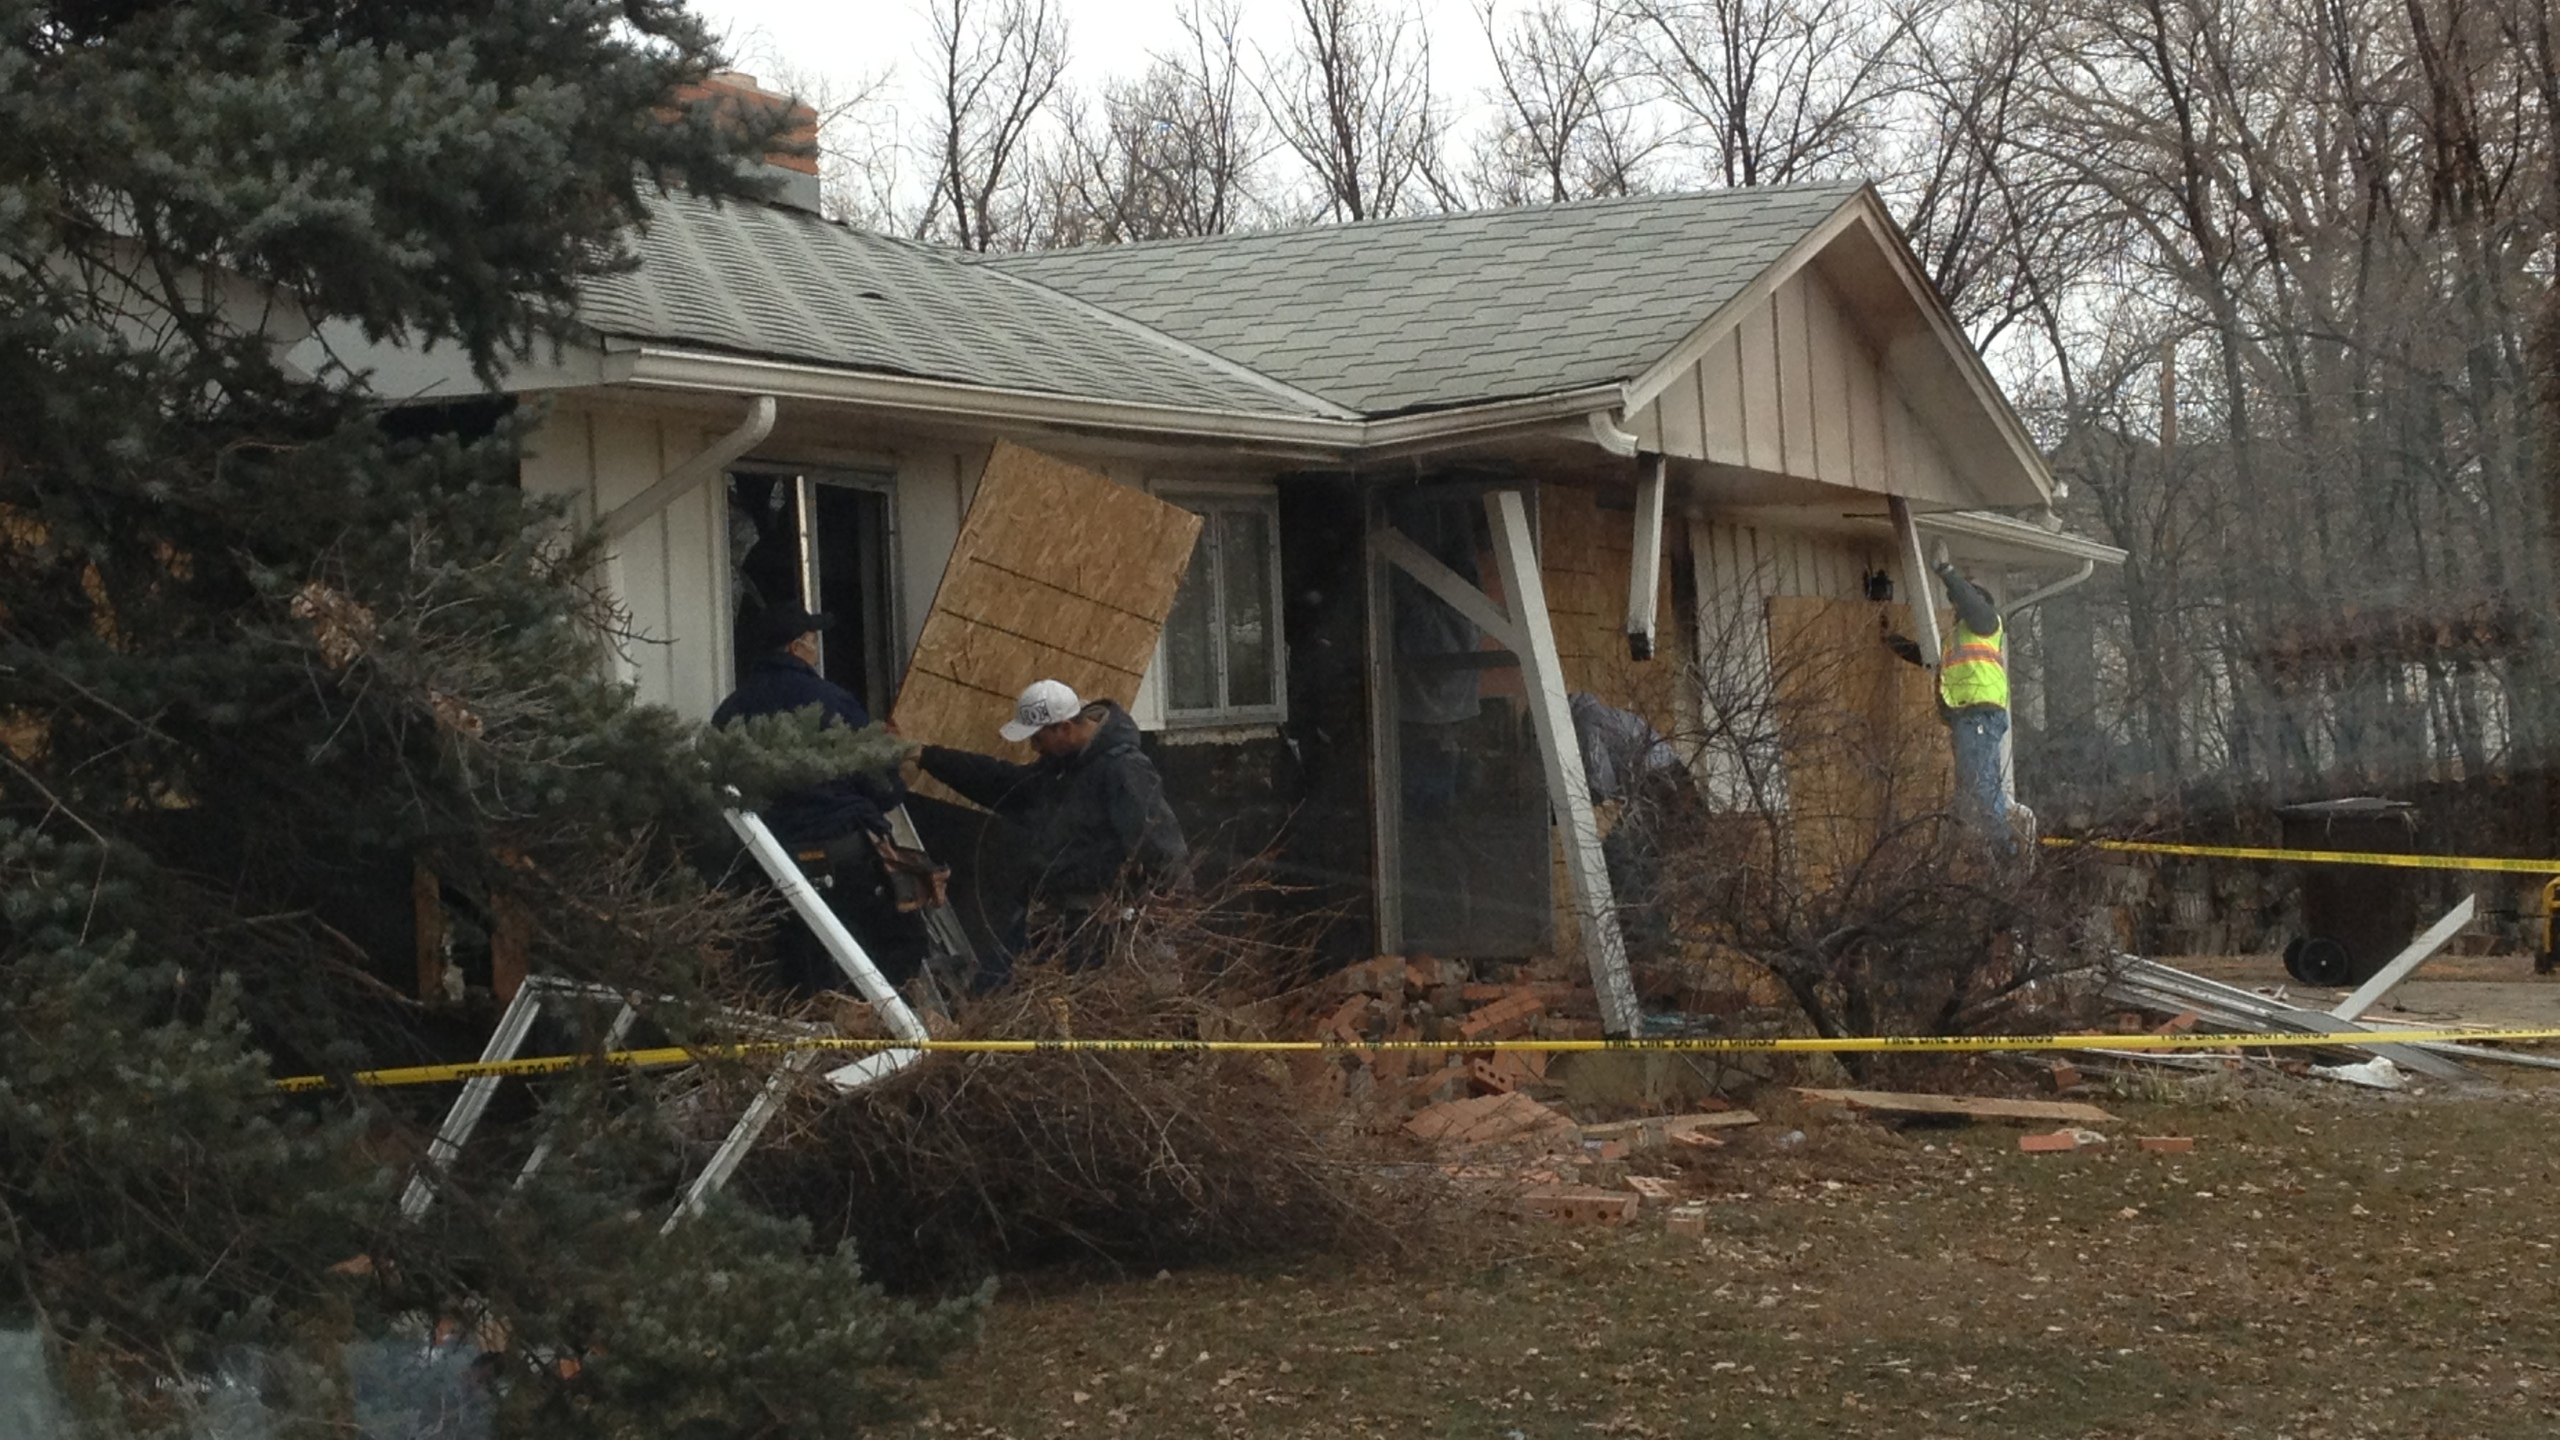 Boulder Sheriff's deputies and a bystander rescued a woman from her burning home Saturday.